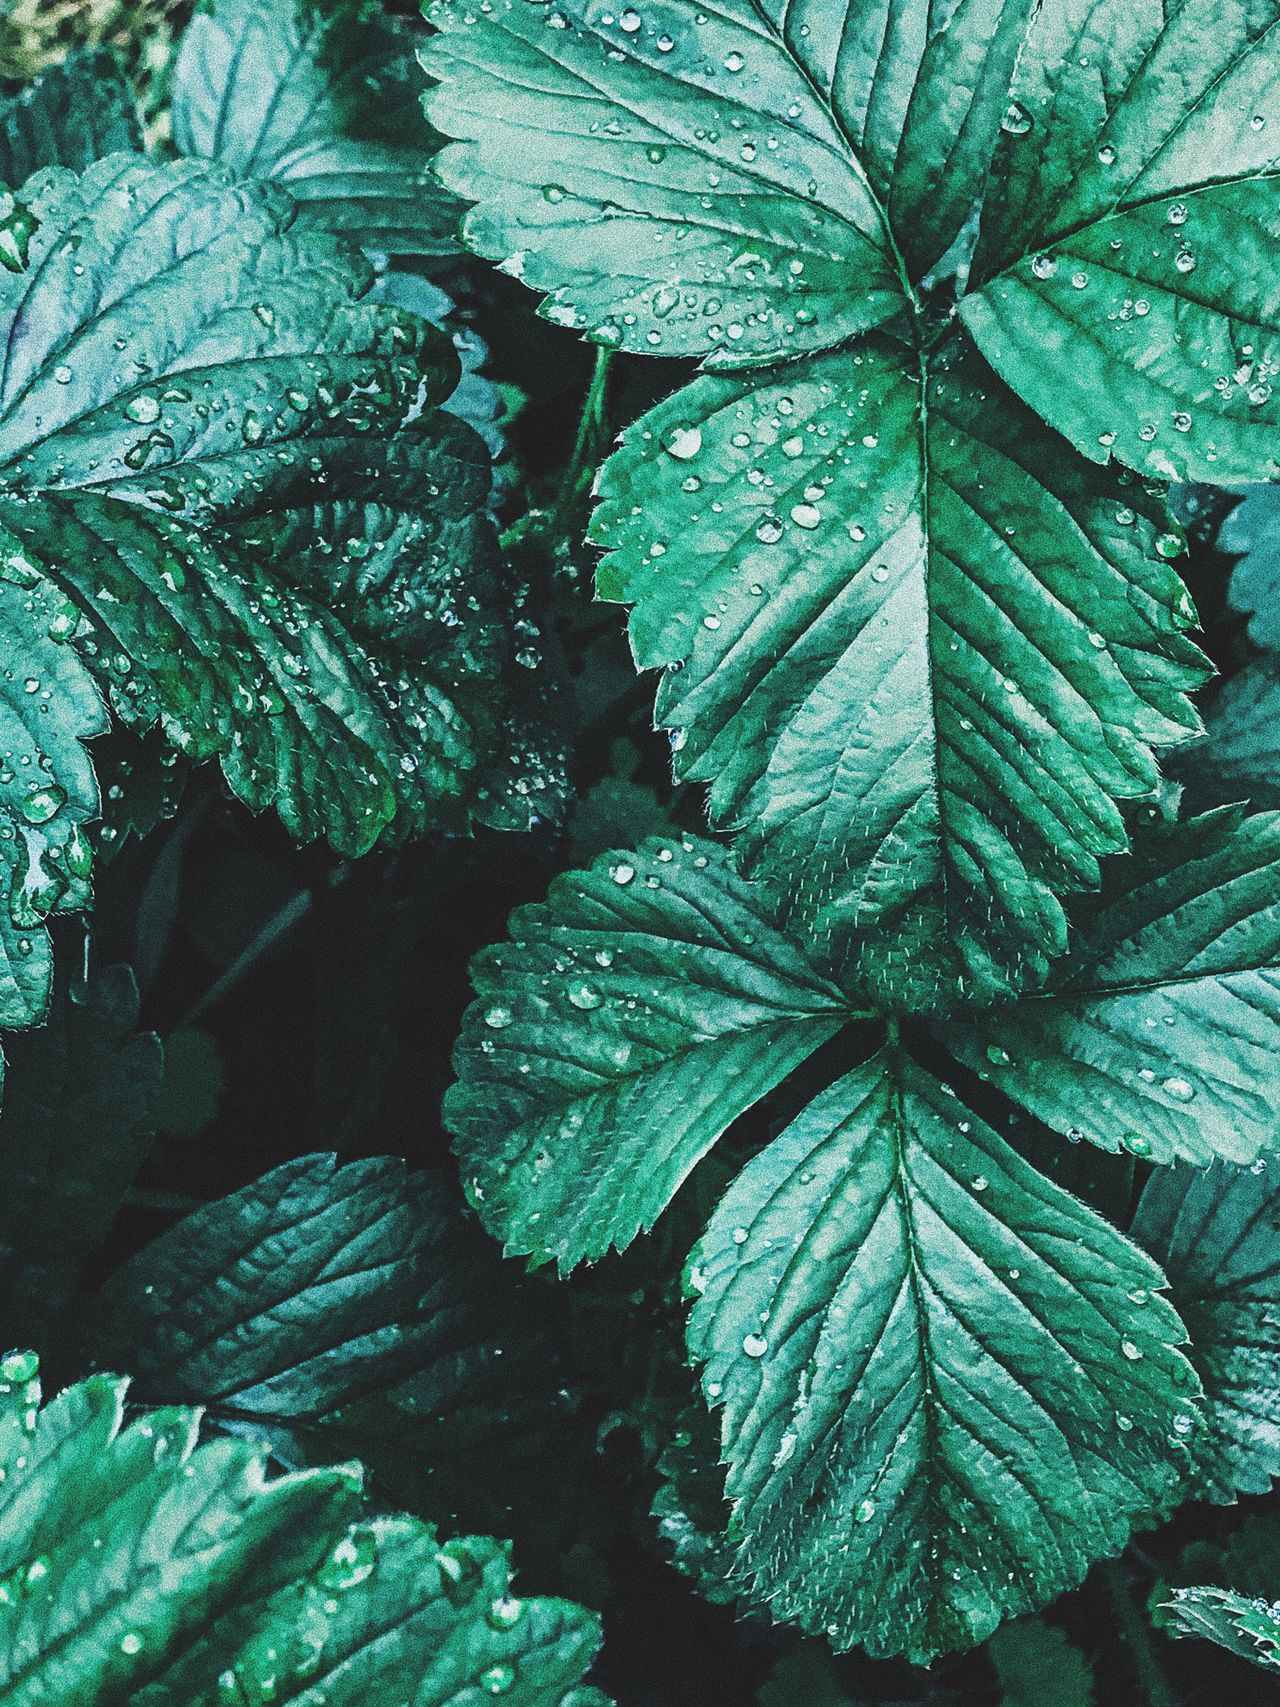 Leaf Green Color Growth Nature Plant Beauty In Nature No People Day Close-up Outdoors Fragility Freshness Water Rainy Water Droplets Close Up Green Color Simplicity Growth